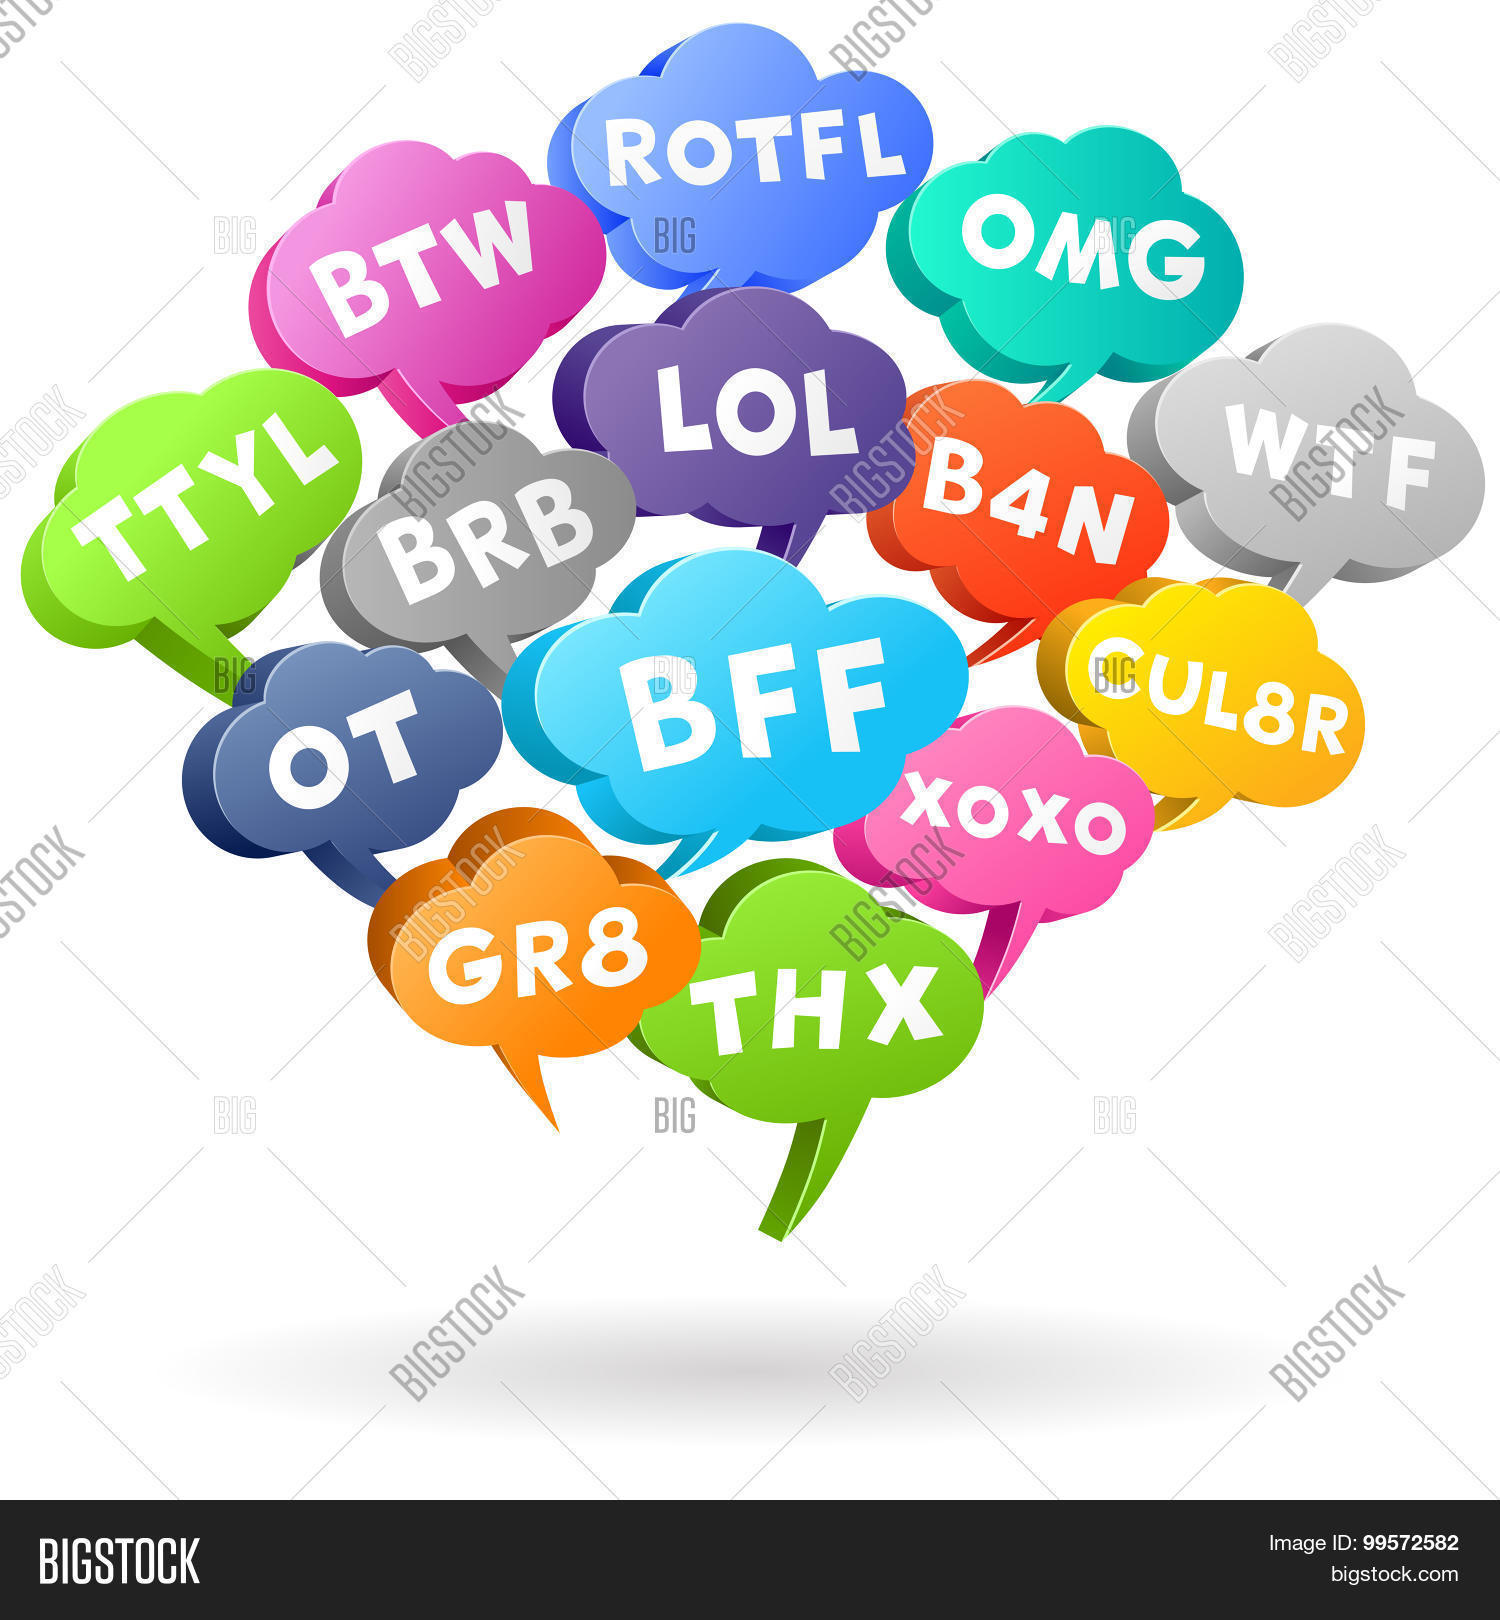 Chat brb  What's the meaning of asl, brb, lol, wtf, pw, afa